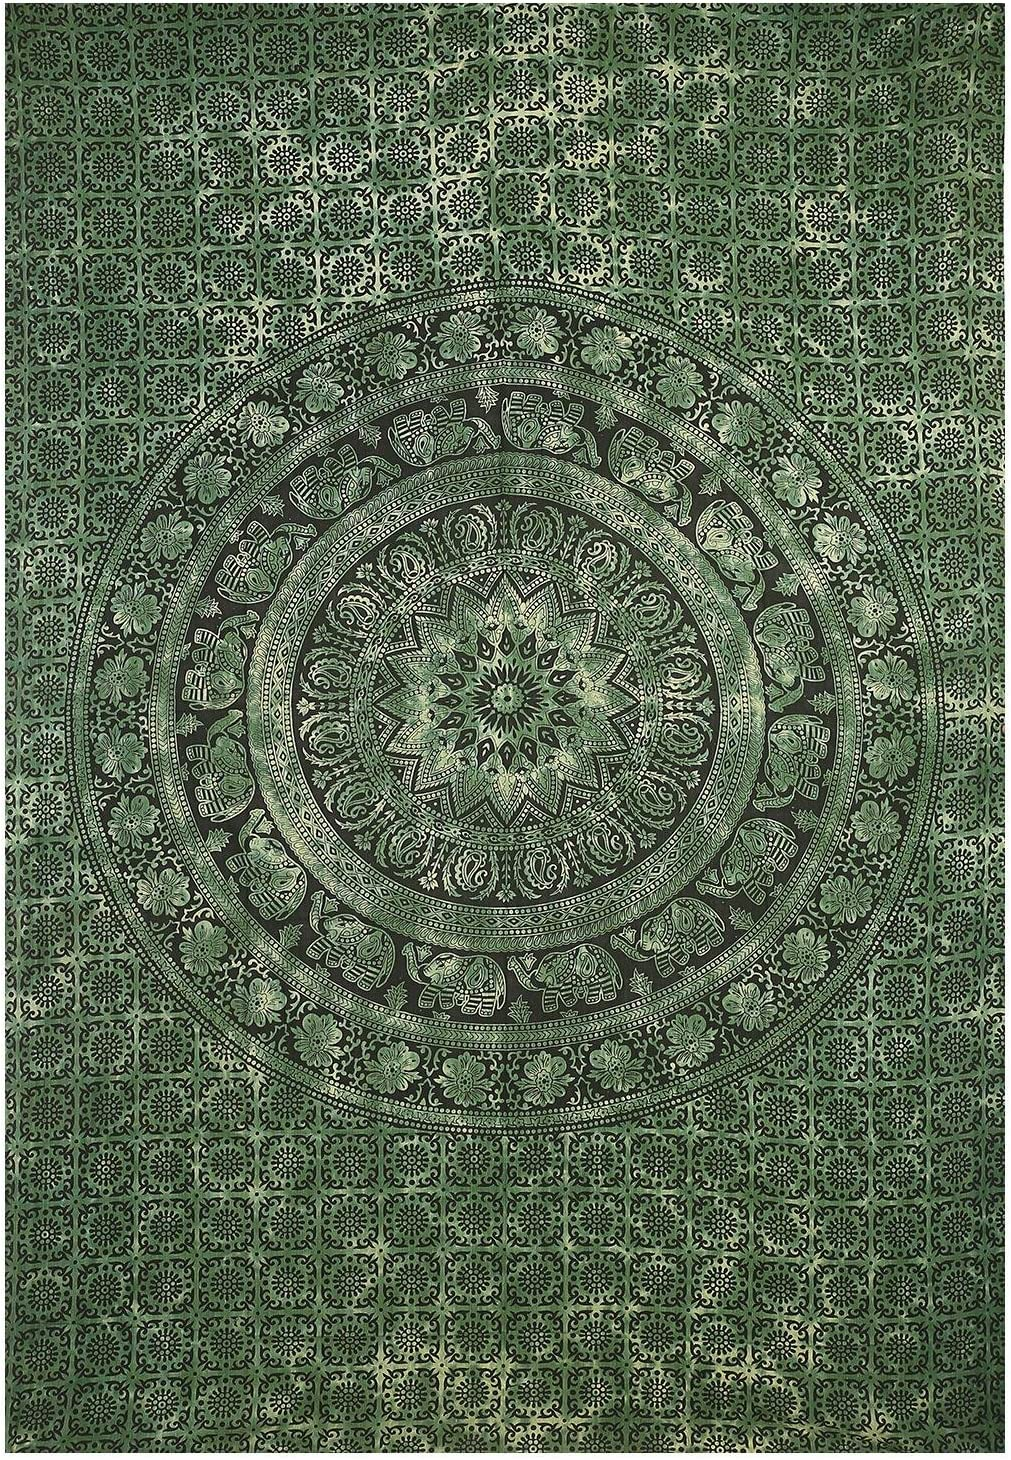 Olive Green Tie Dye Twin Tapestry Hippie Wall Hanging Art Decor Single Mandala Elephant Tapestry Hippie Dorm